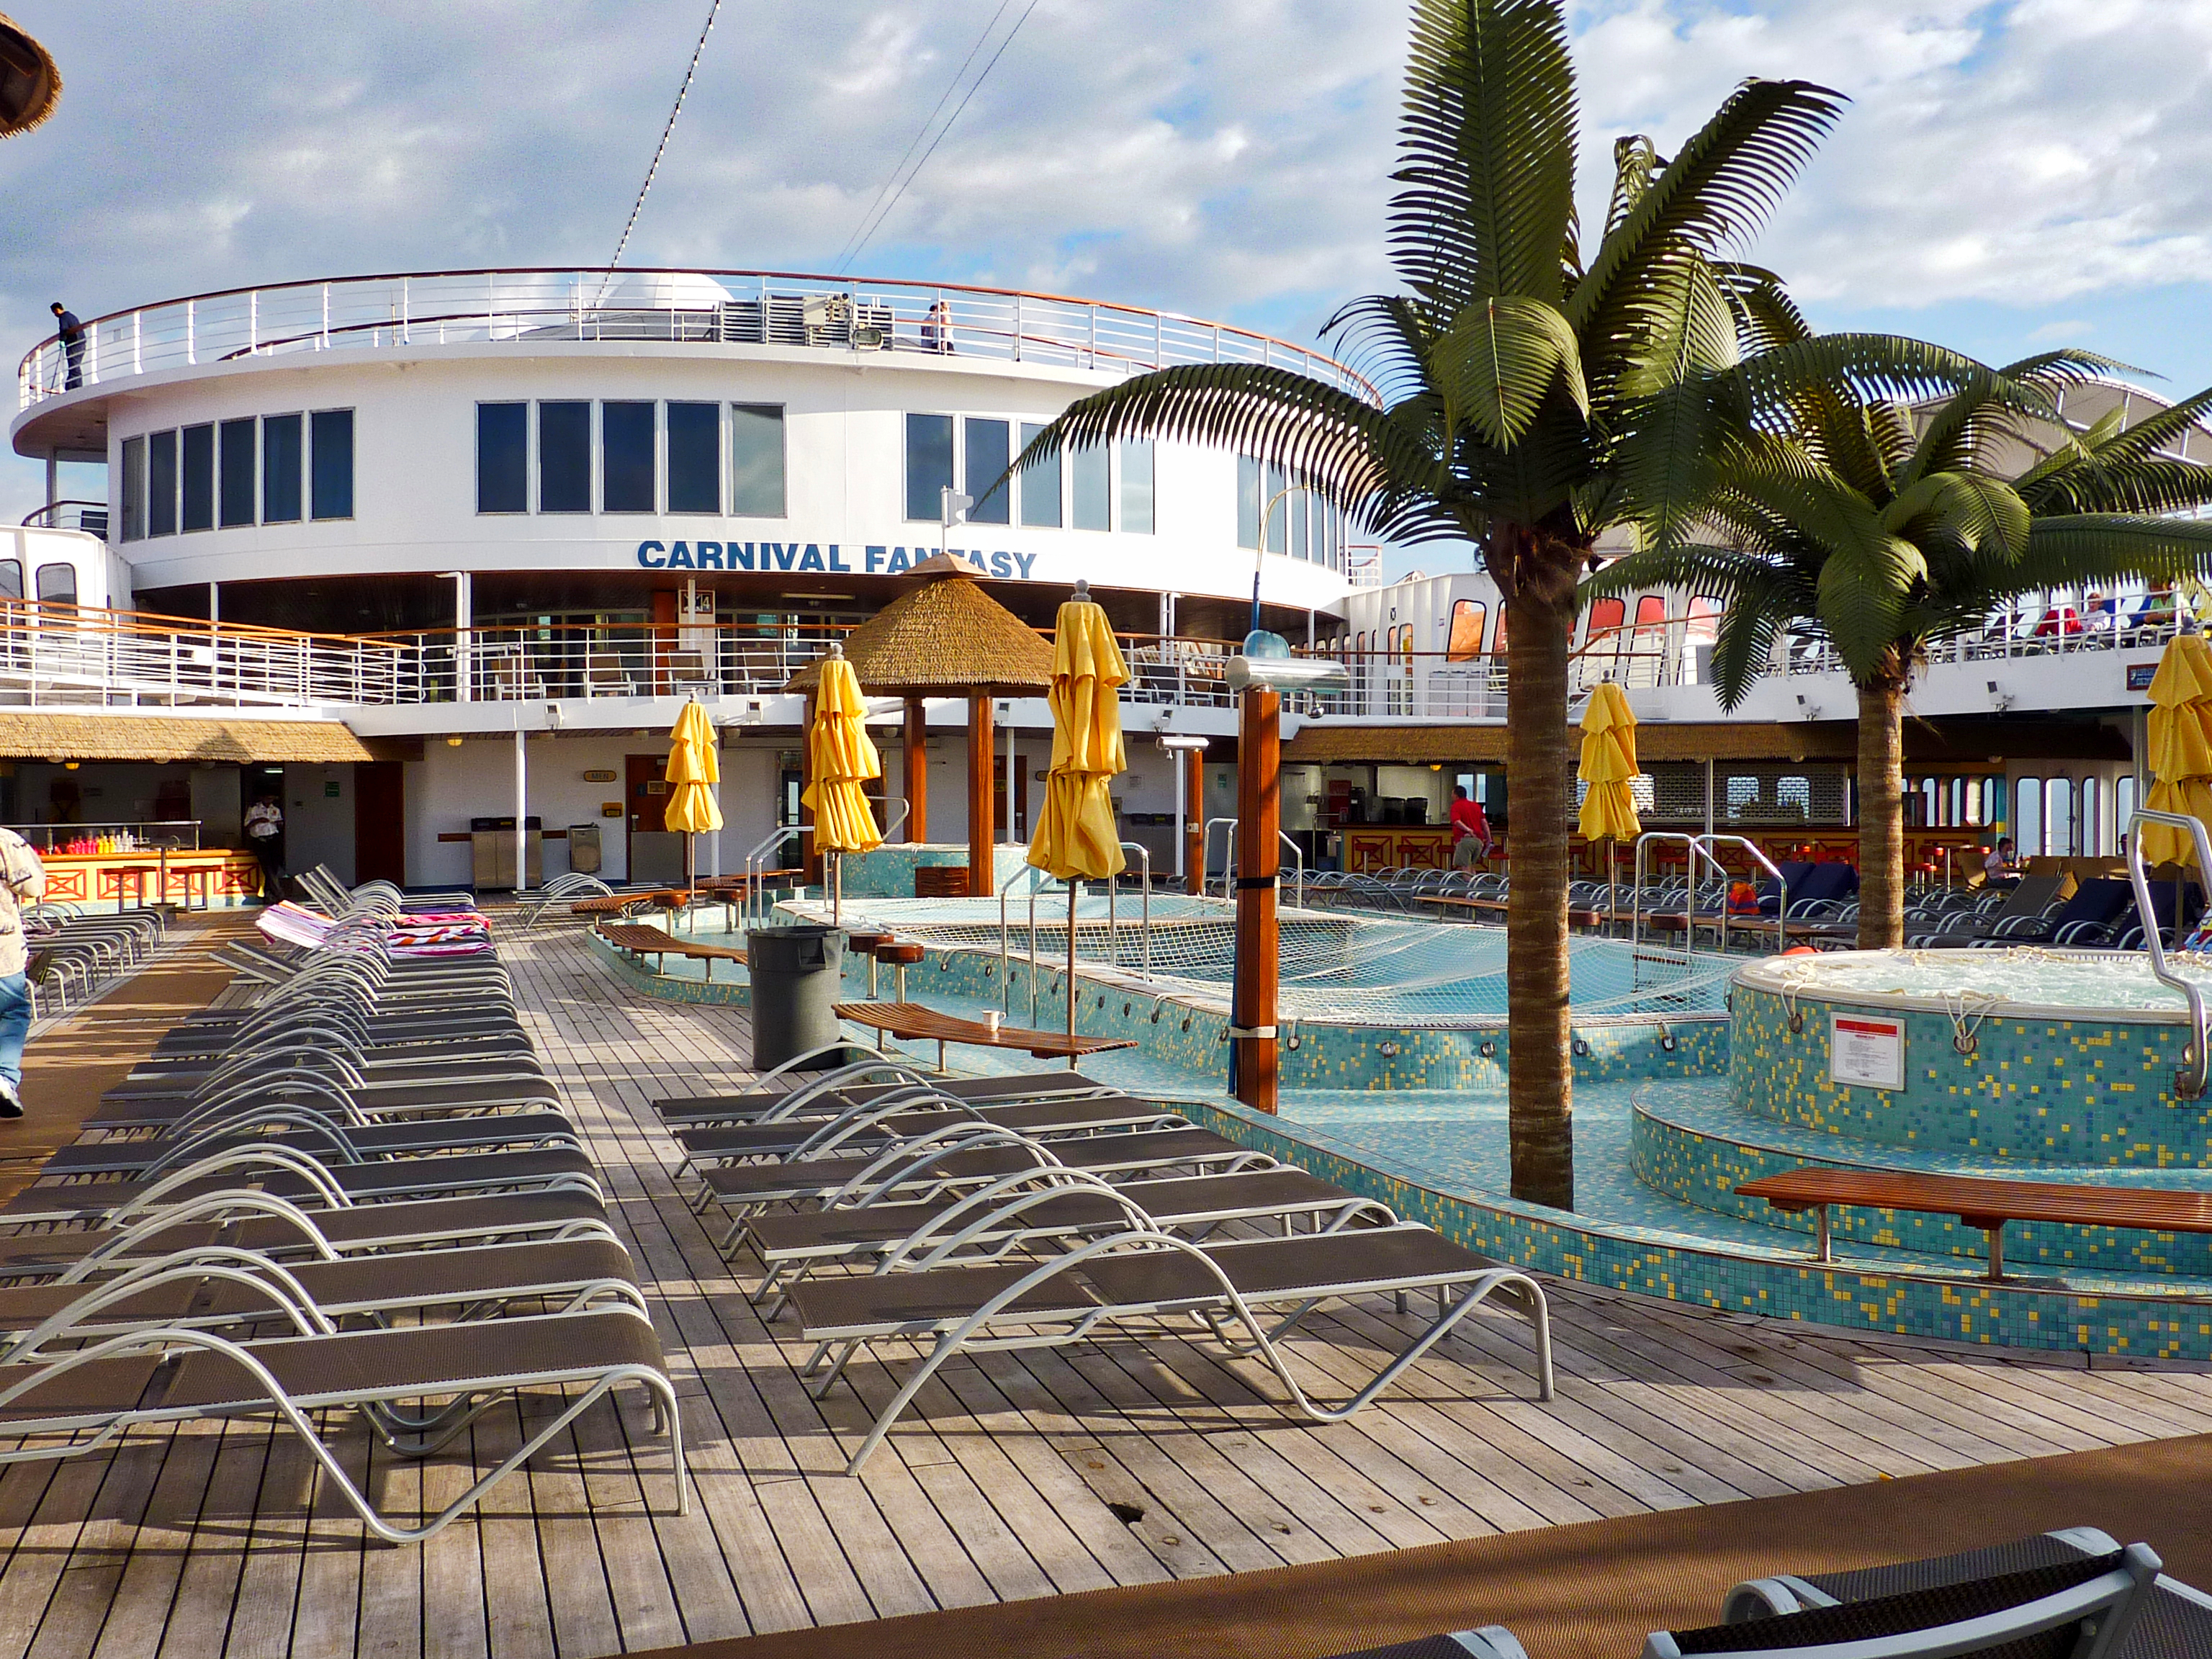 Top Deck on the Carnival Fantasy